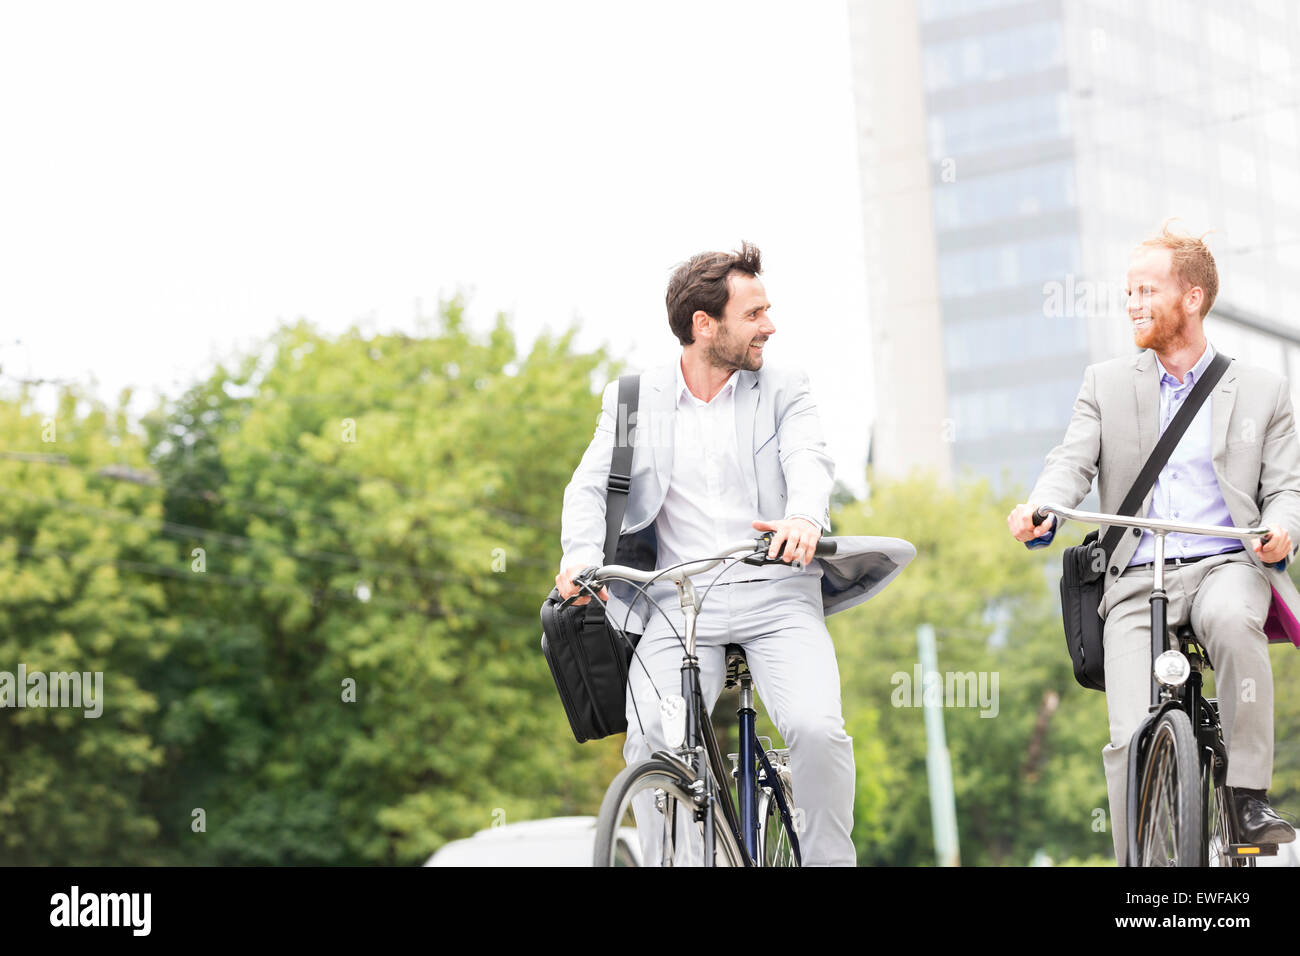 Businessmen talking while riding bicycles outdoors - Stock Image